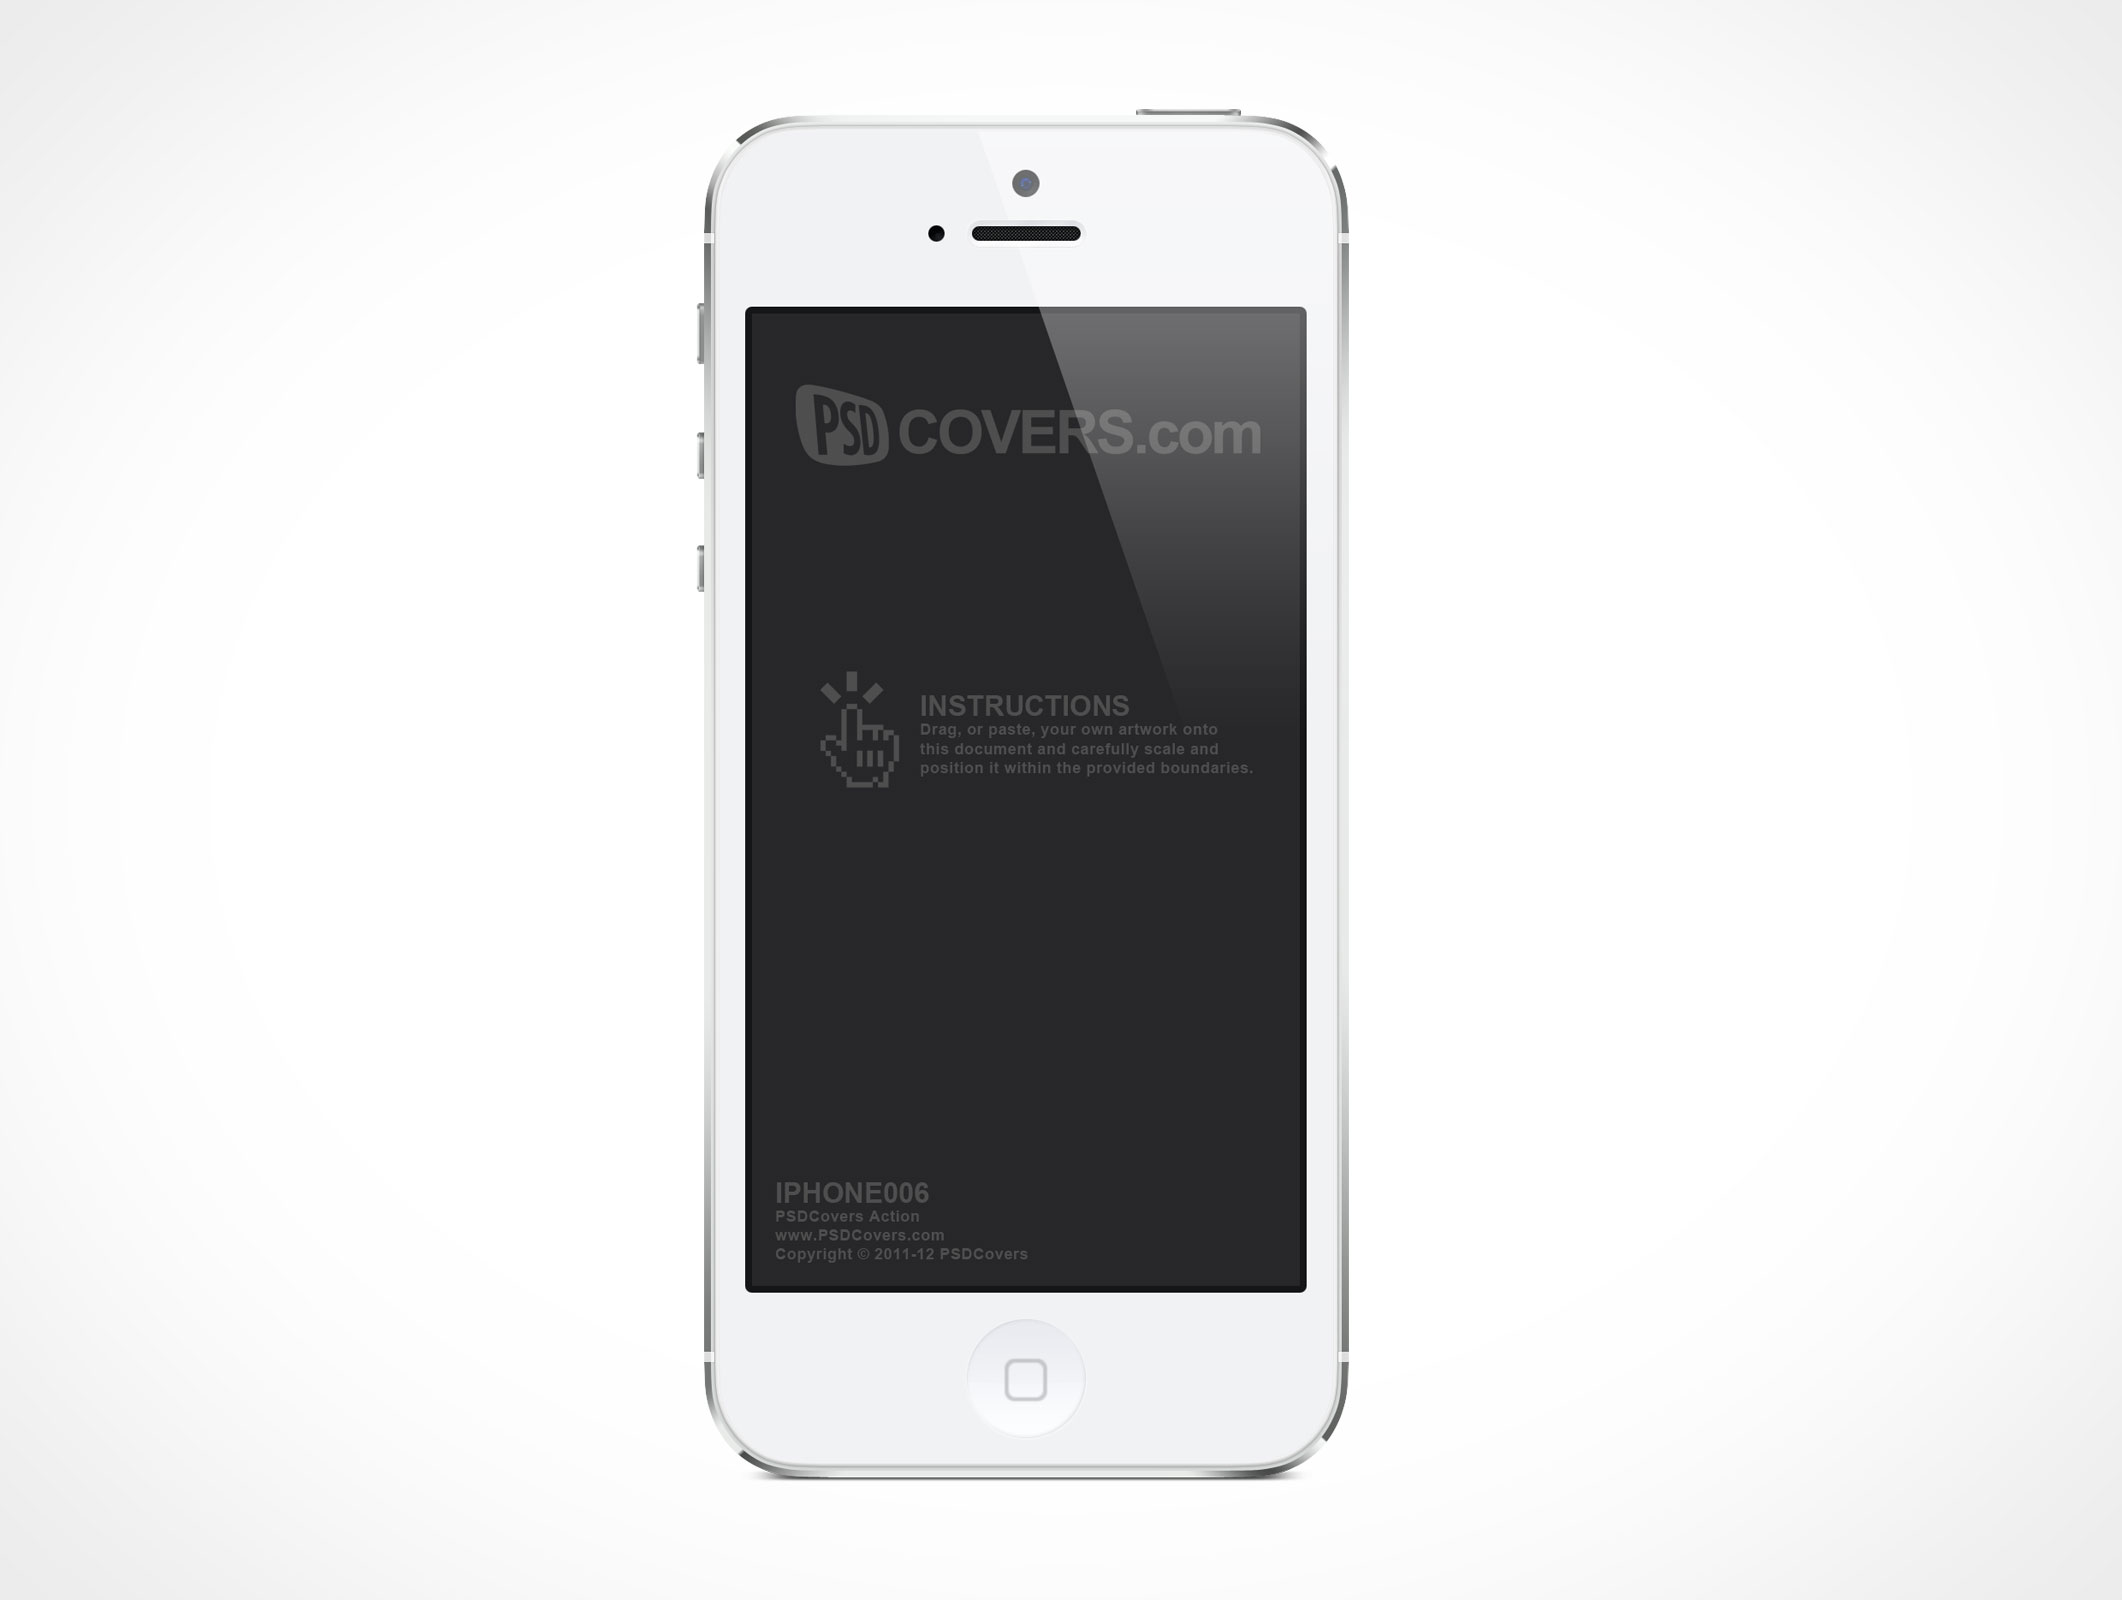 IPHONE006 by PSDCovers